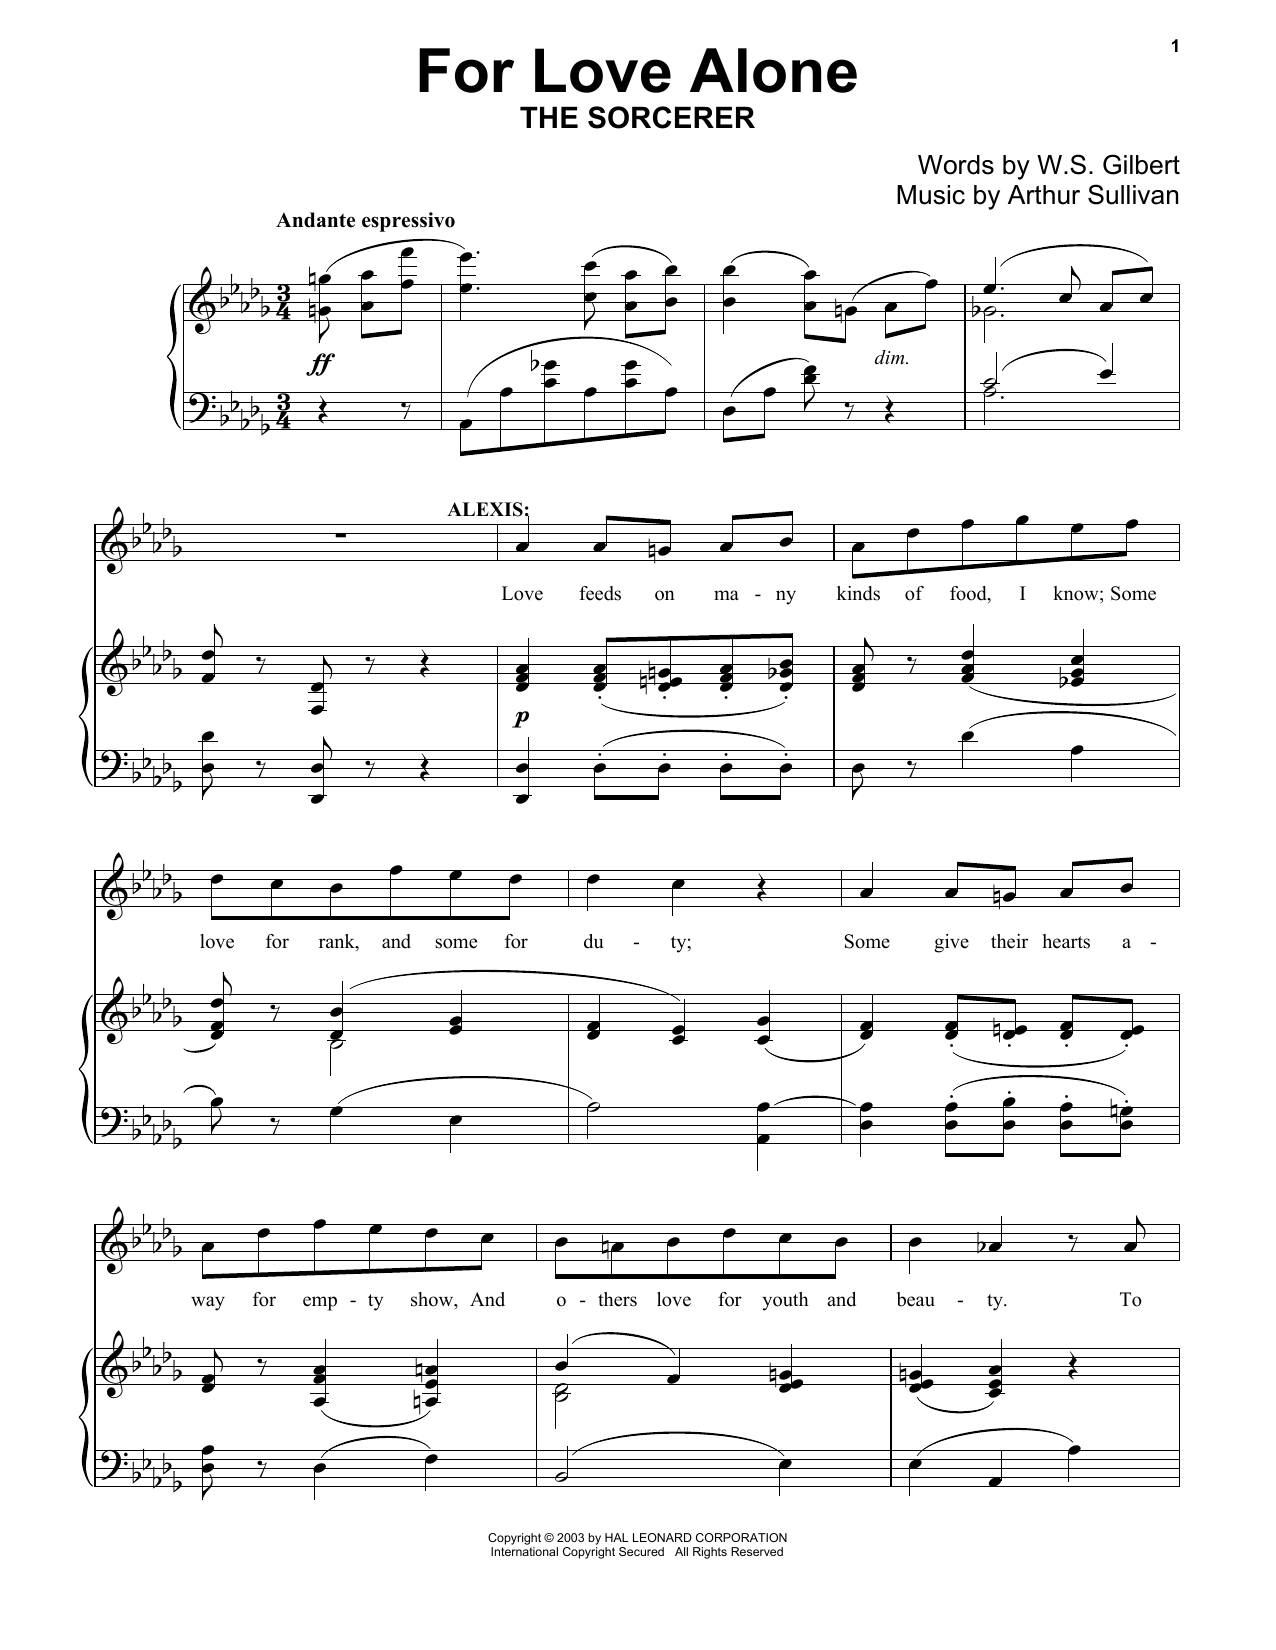 For Love Alone Sheet Music